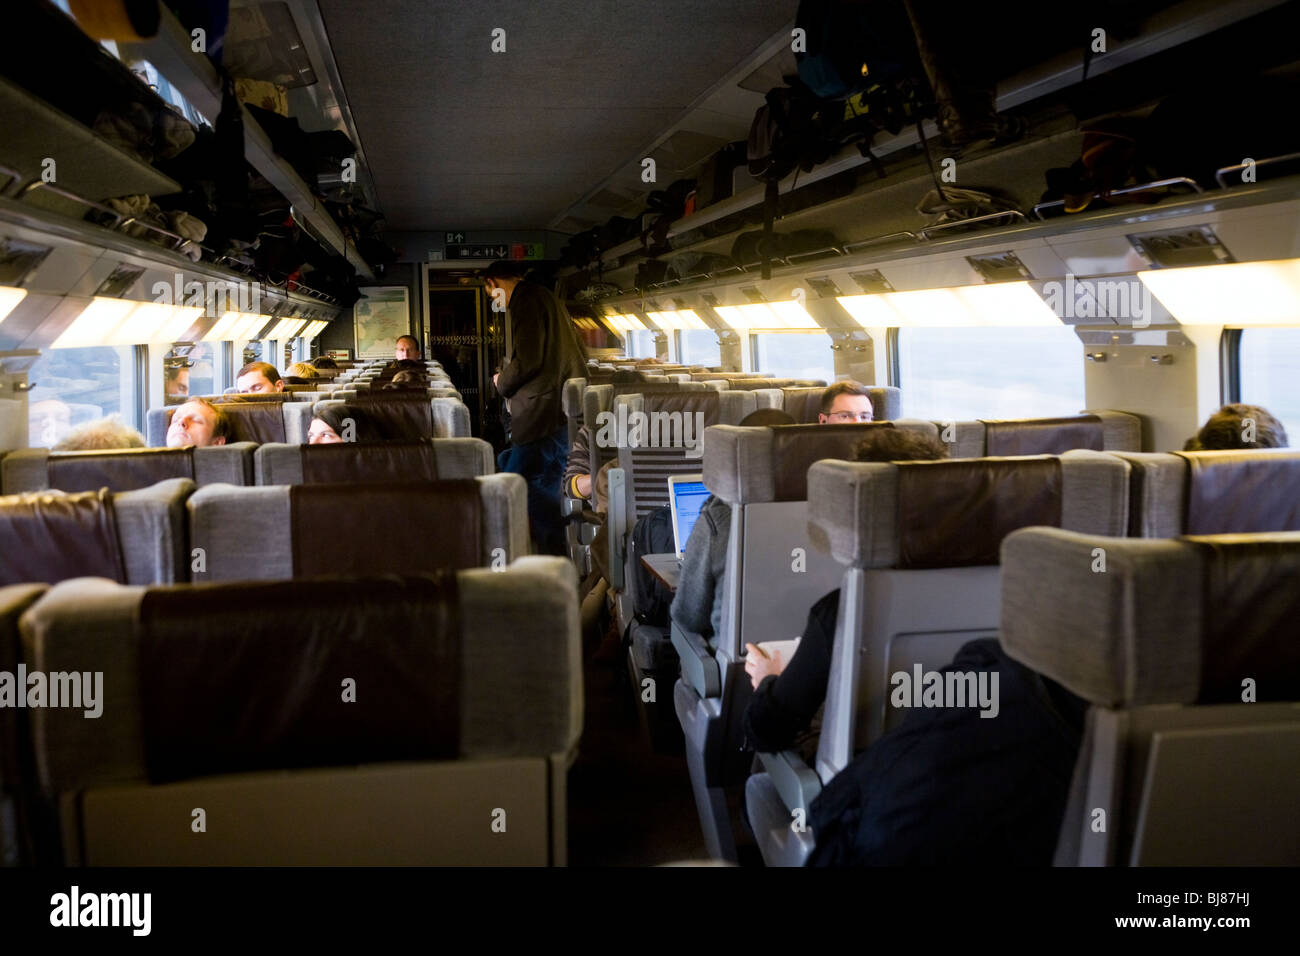 interior of train carriage on the eurostar service to paris stock photo 28455774 alamy. Black Bedroom Furniture Sets. Home Design Ideas